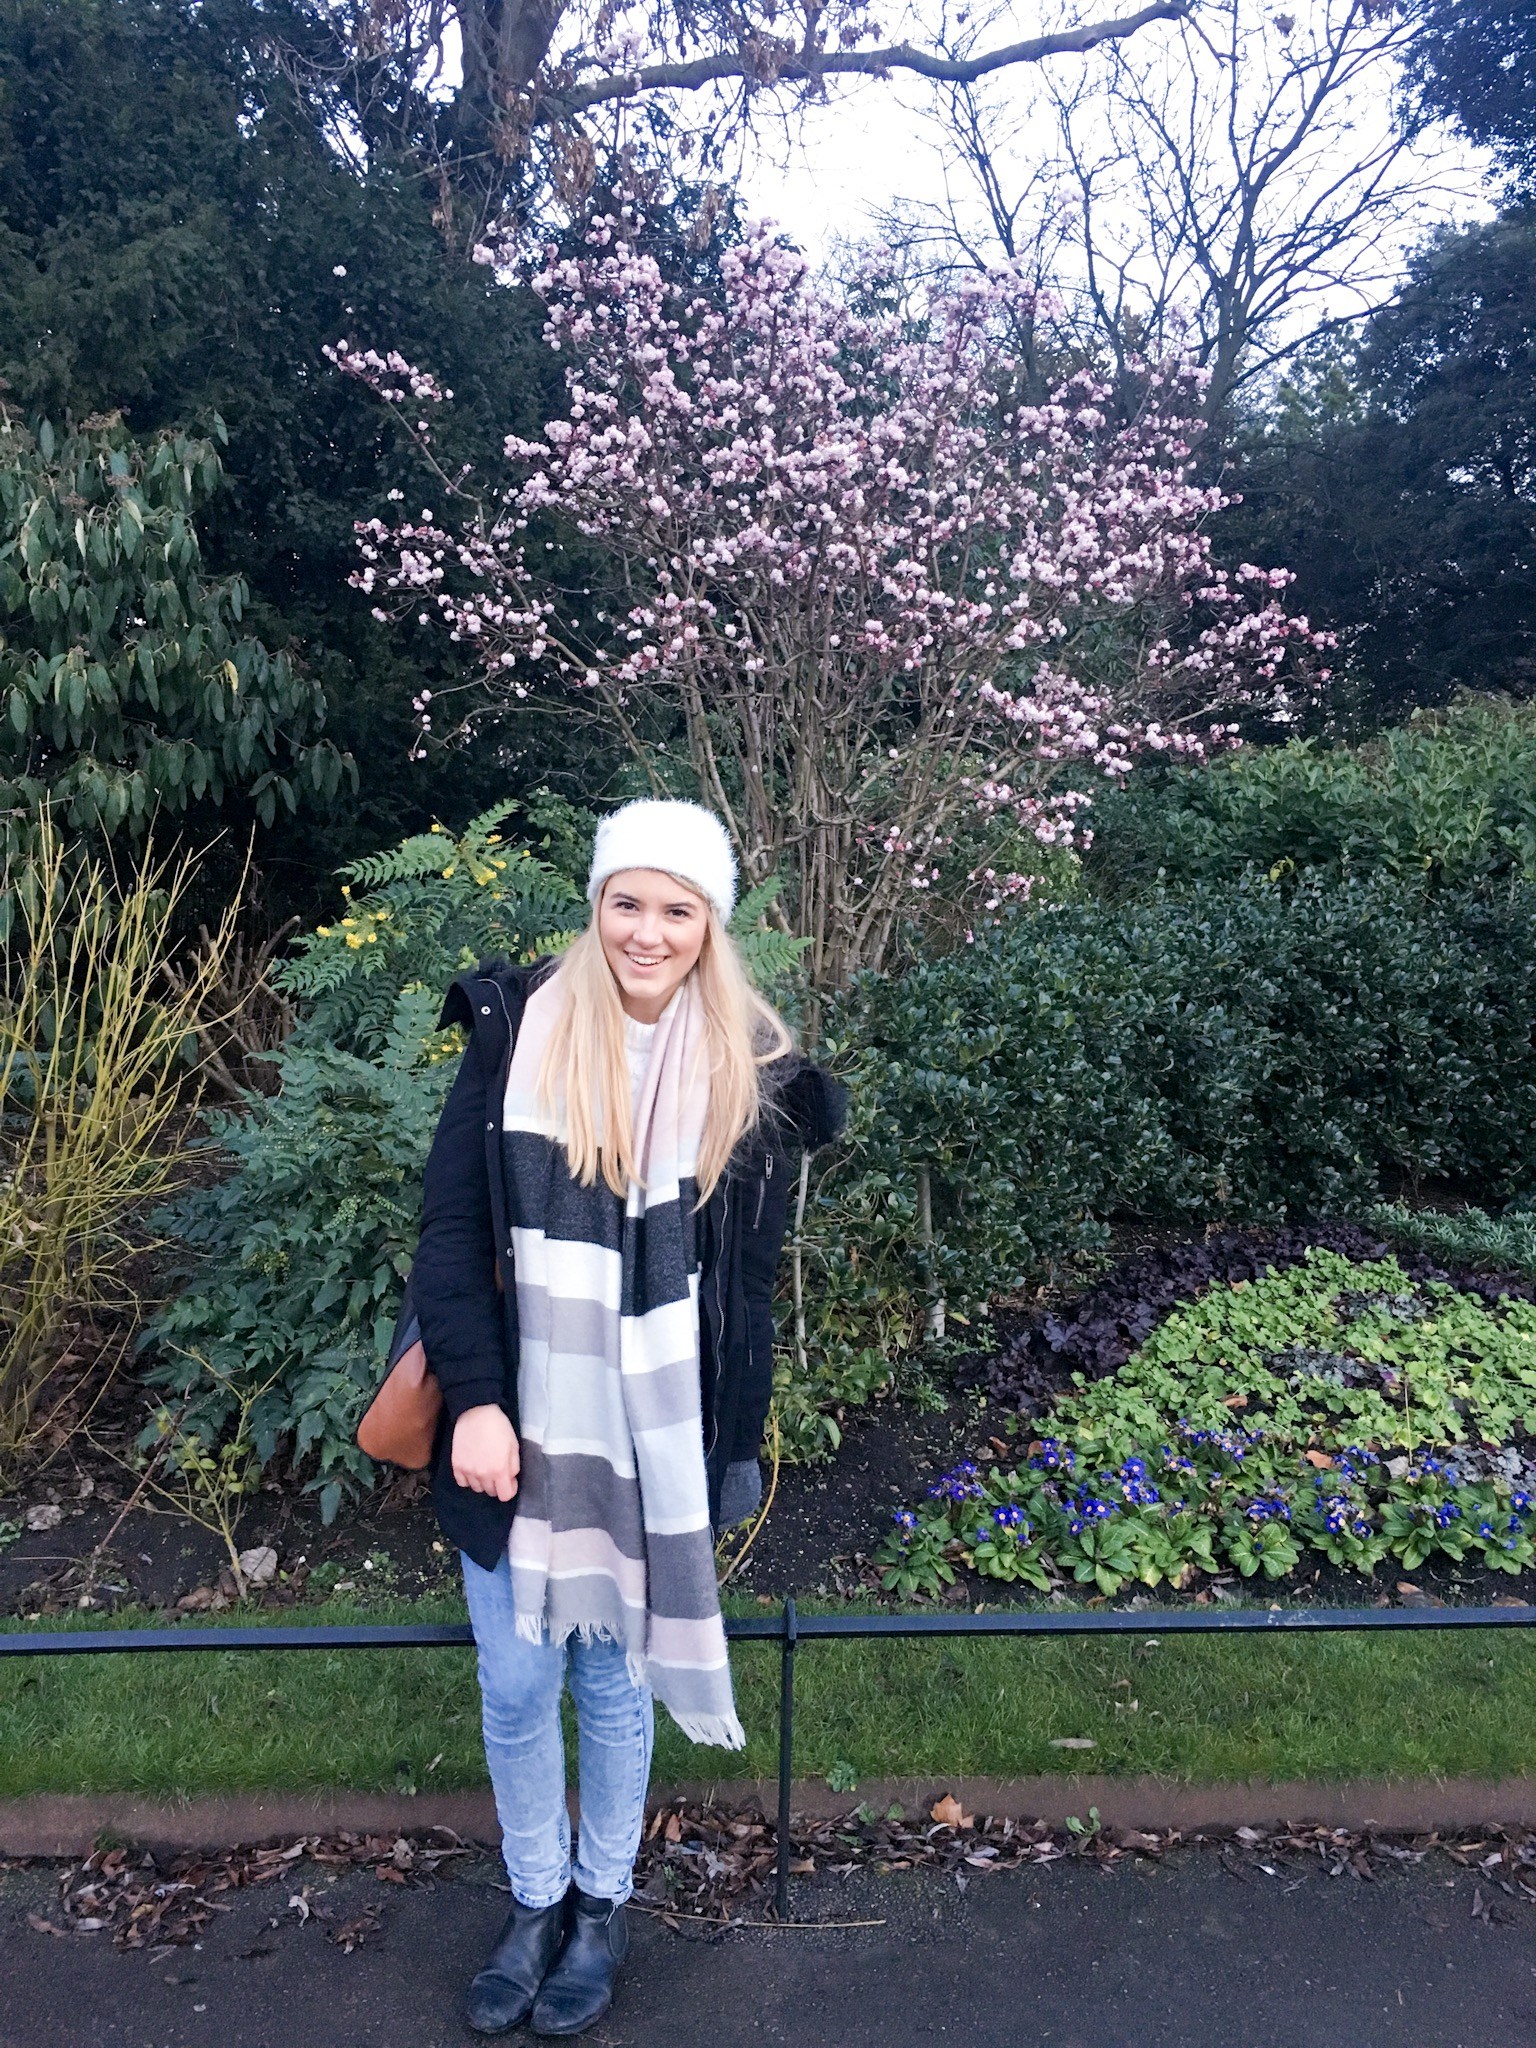 Winter flowers in Regents Park